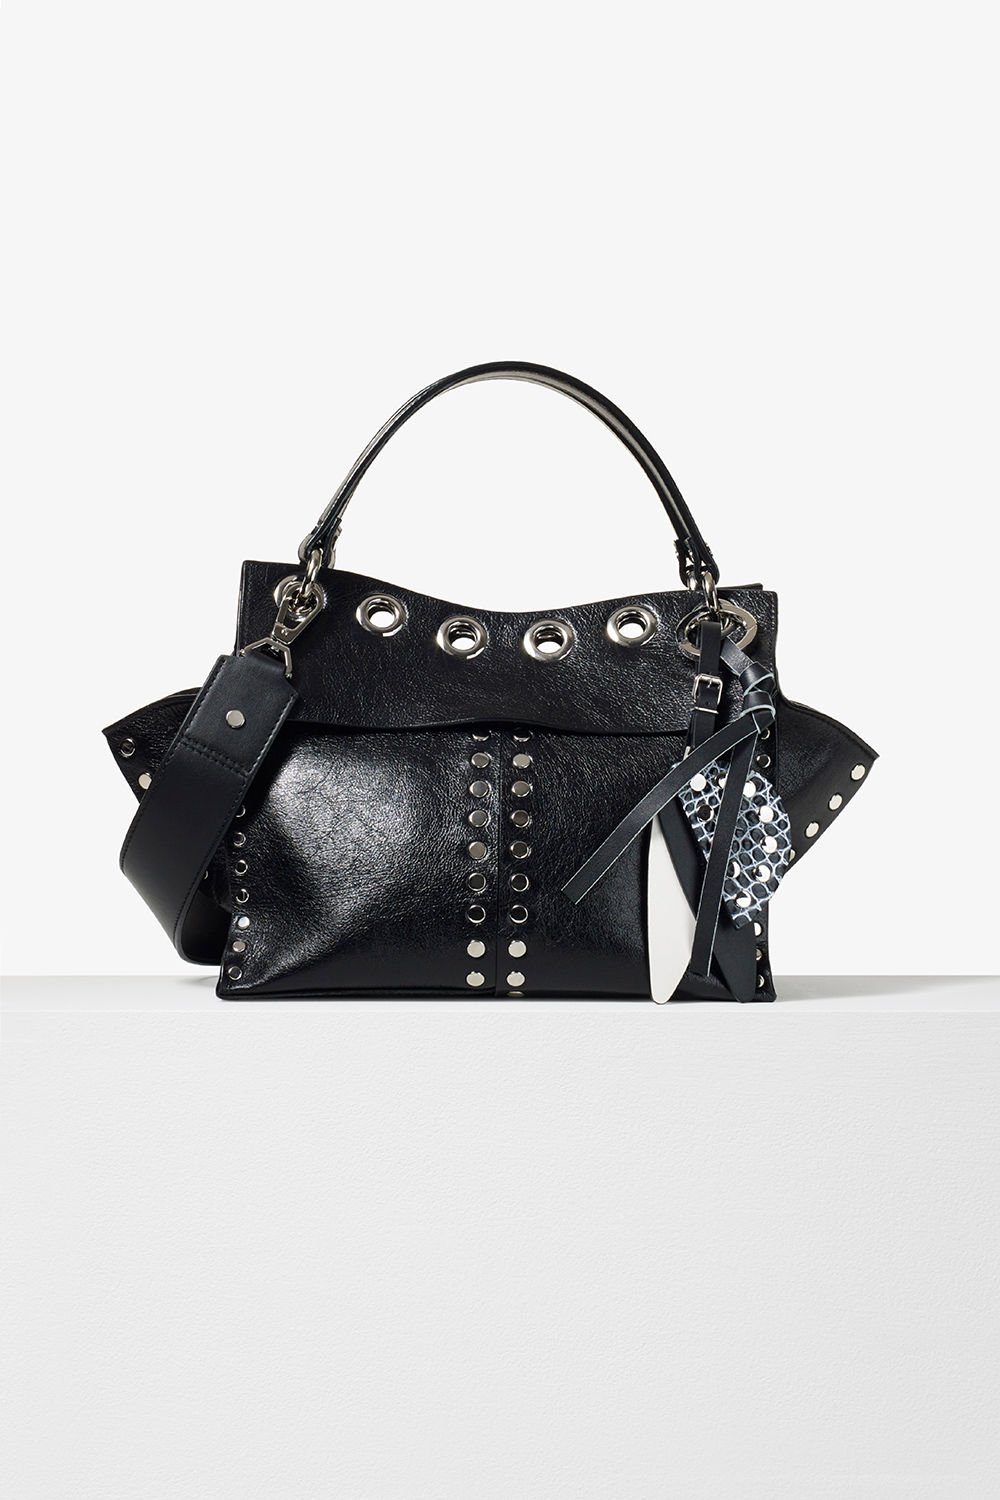 proenza schouler pre fall 2017 black studded leather curl handbag